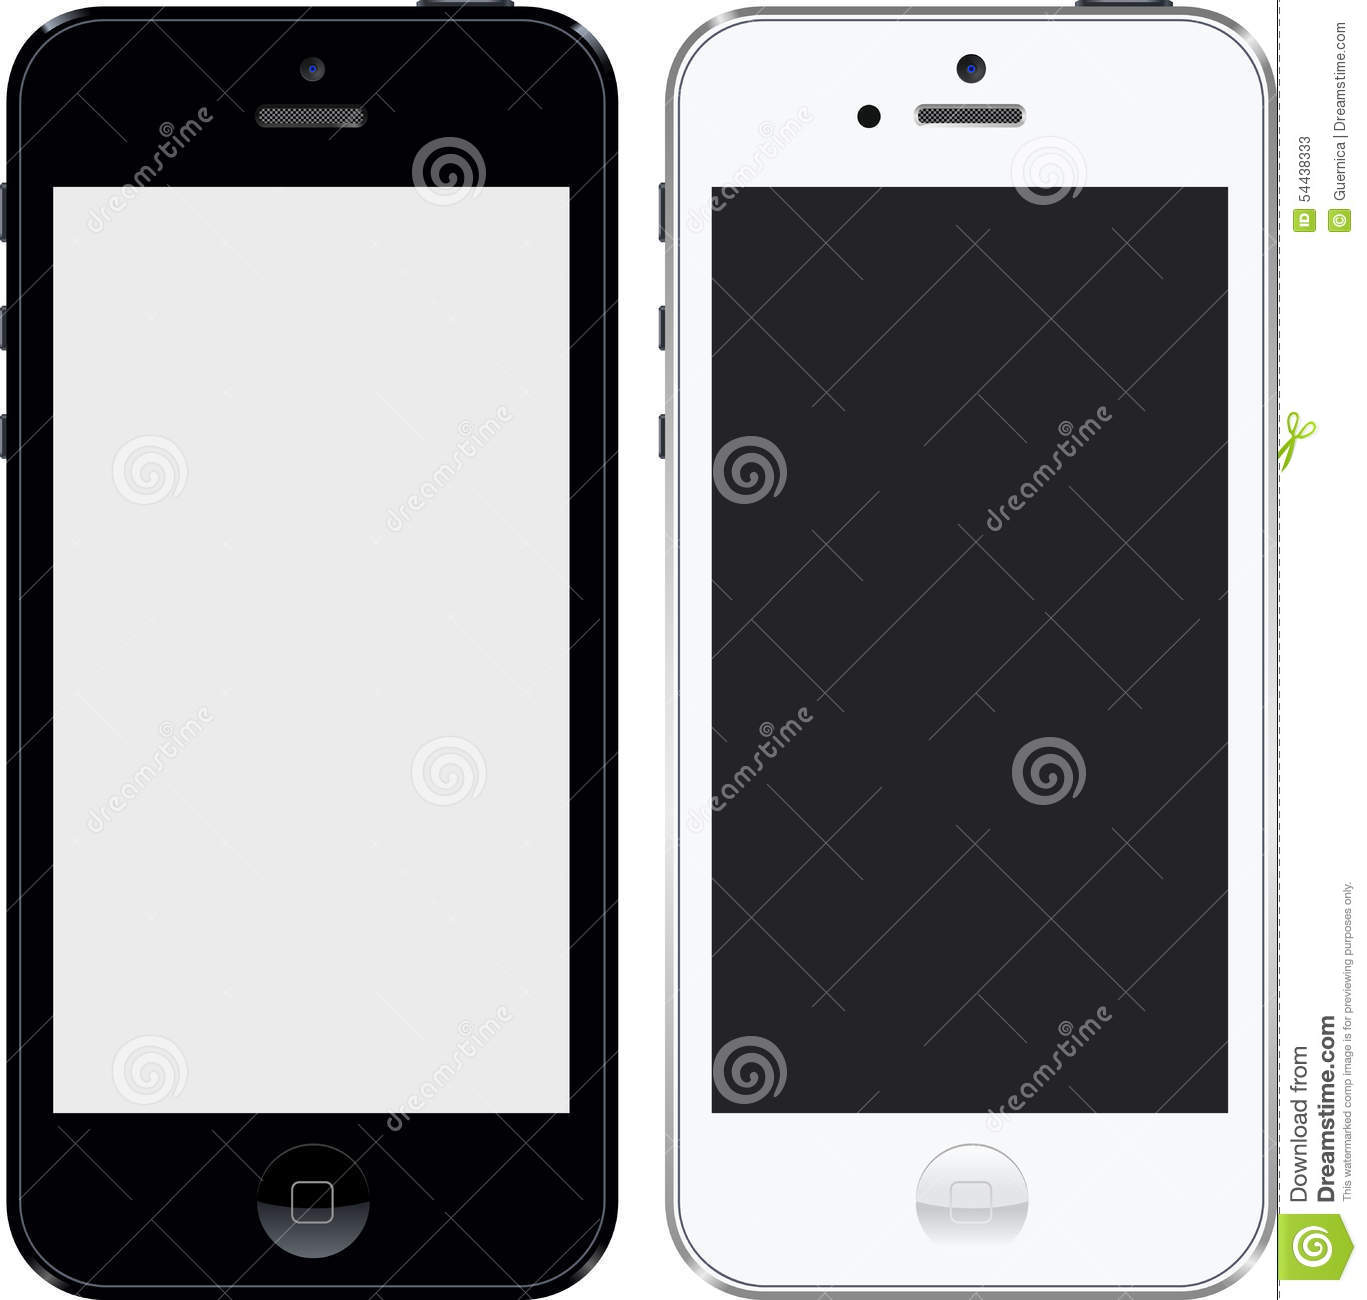 Iphone 5 hohe Schwarzweiss-Res